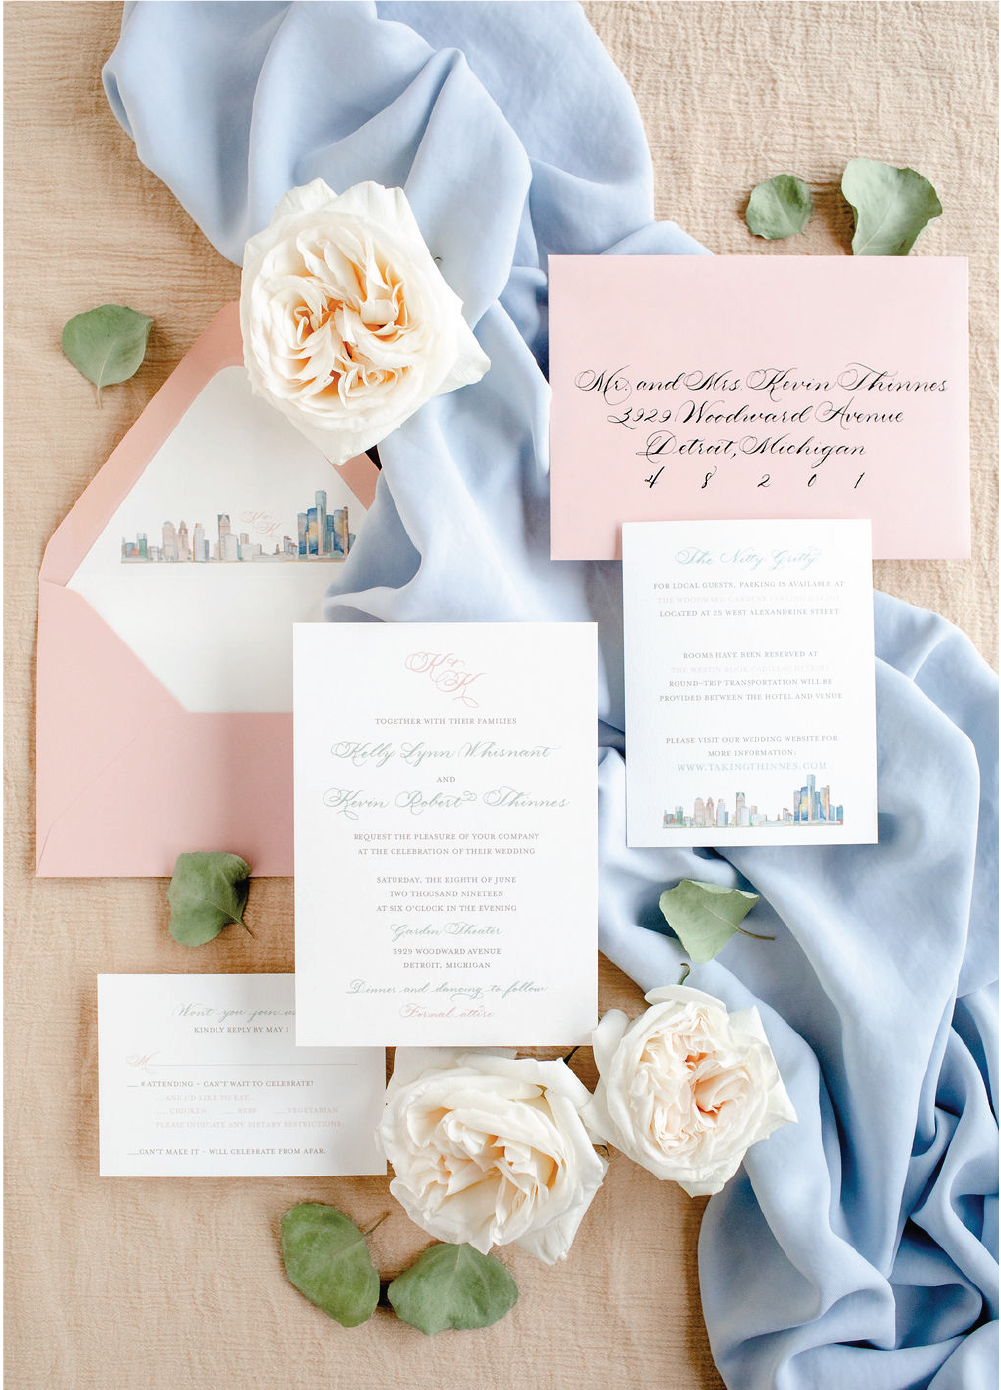 Detroit skyline and pink wedding invitations with calligraphy by Leah E. Moss Designs